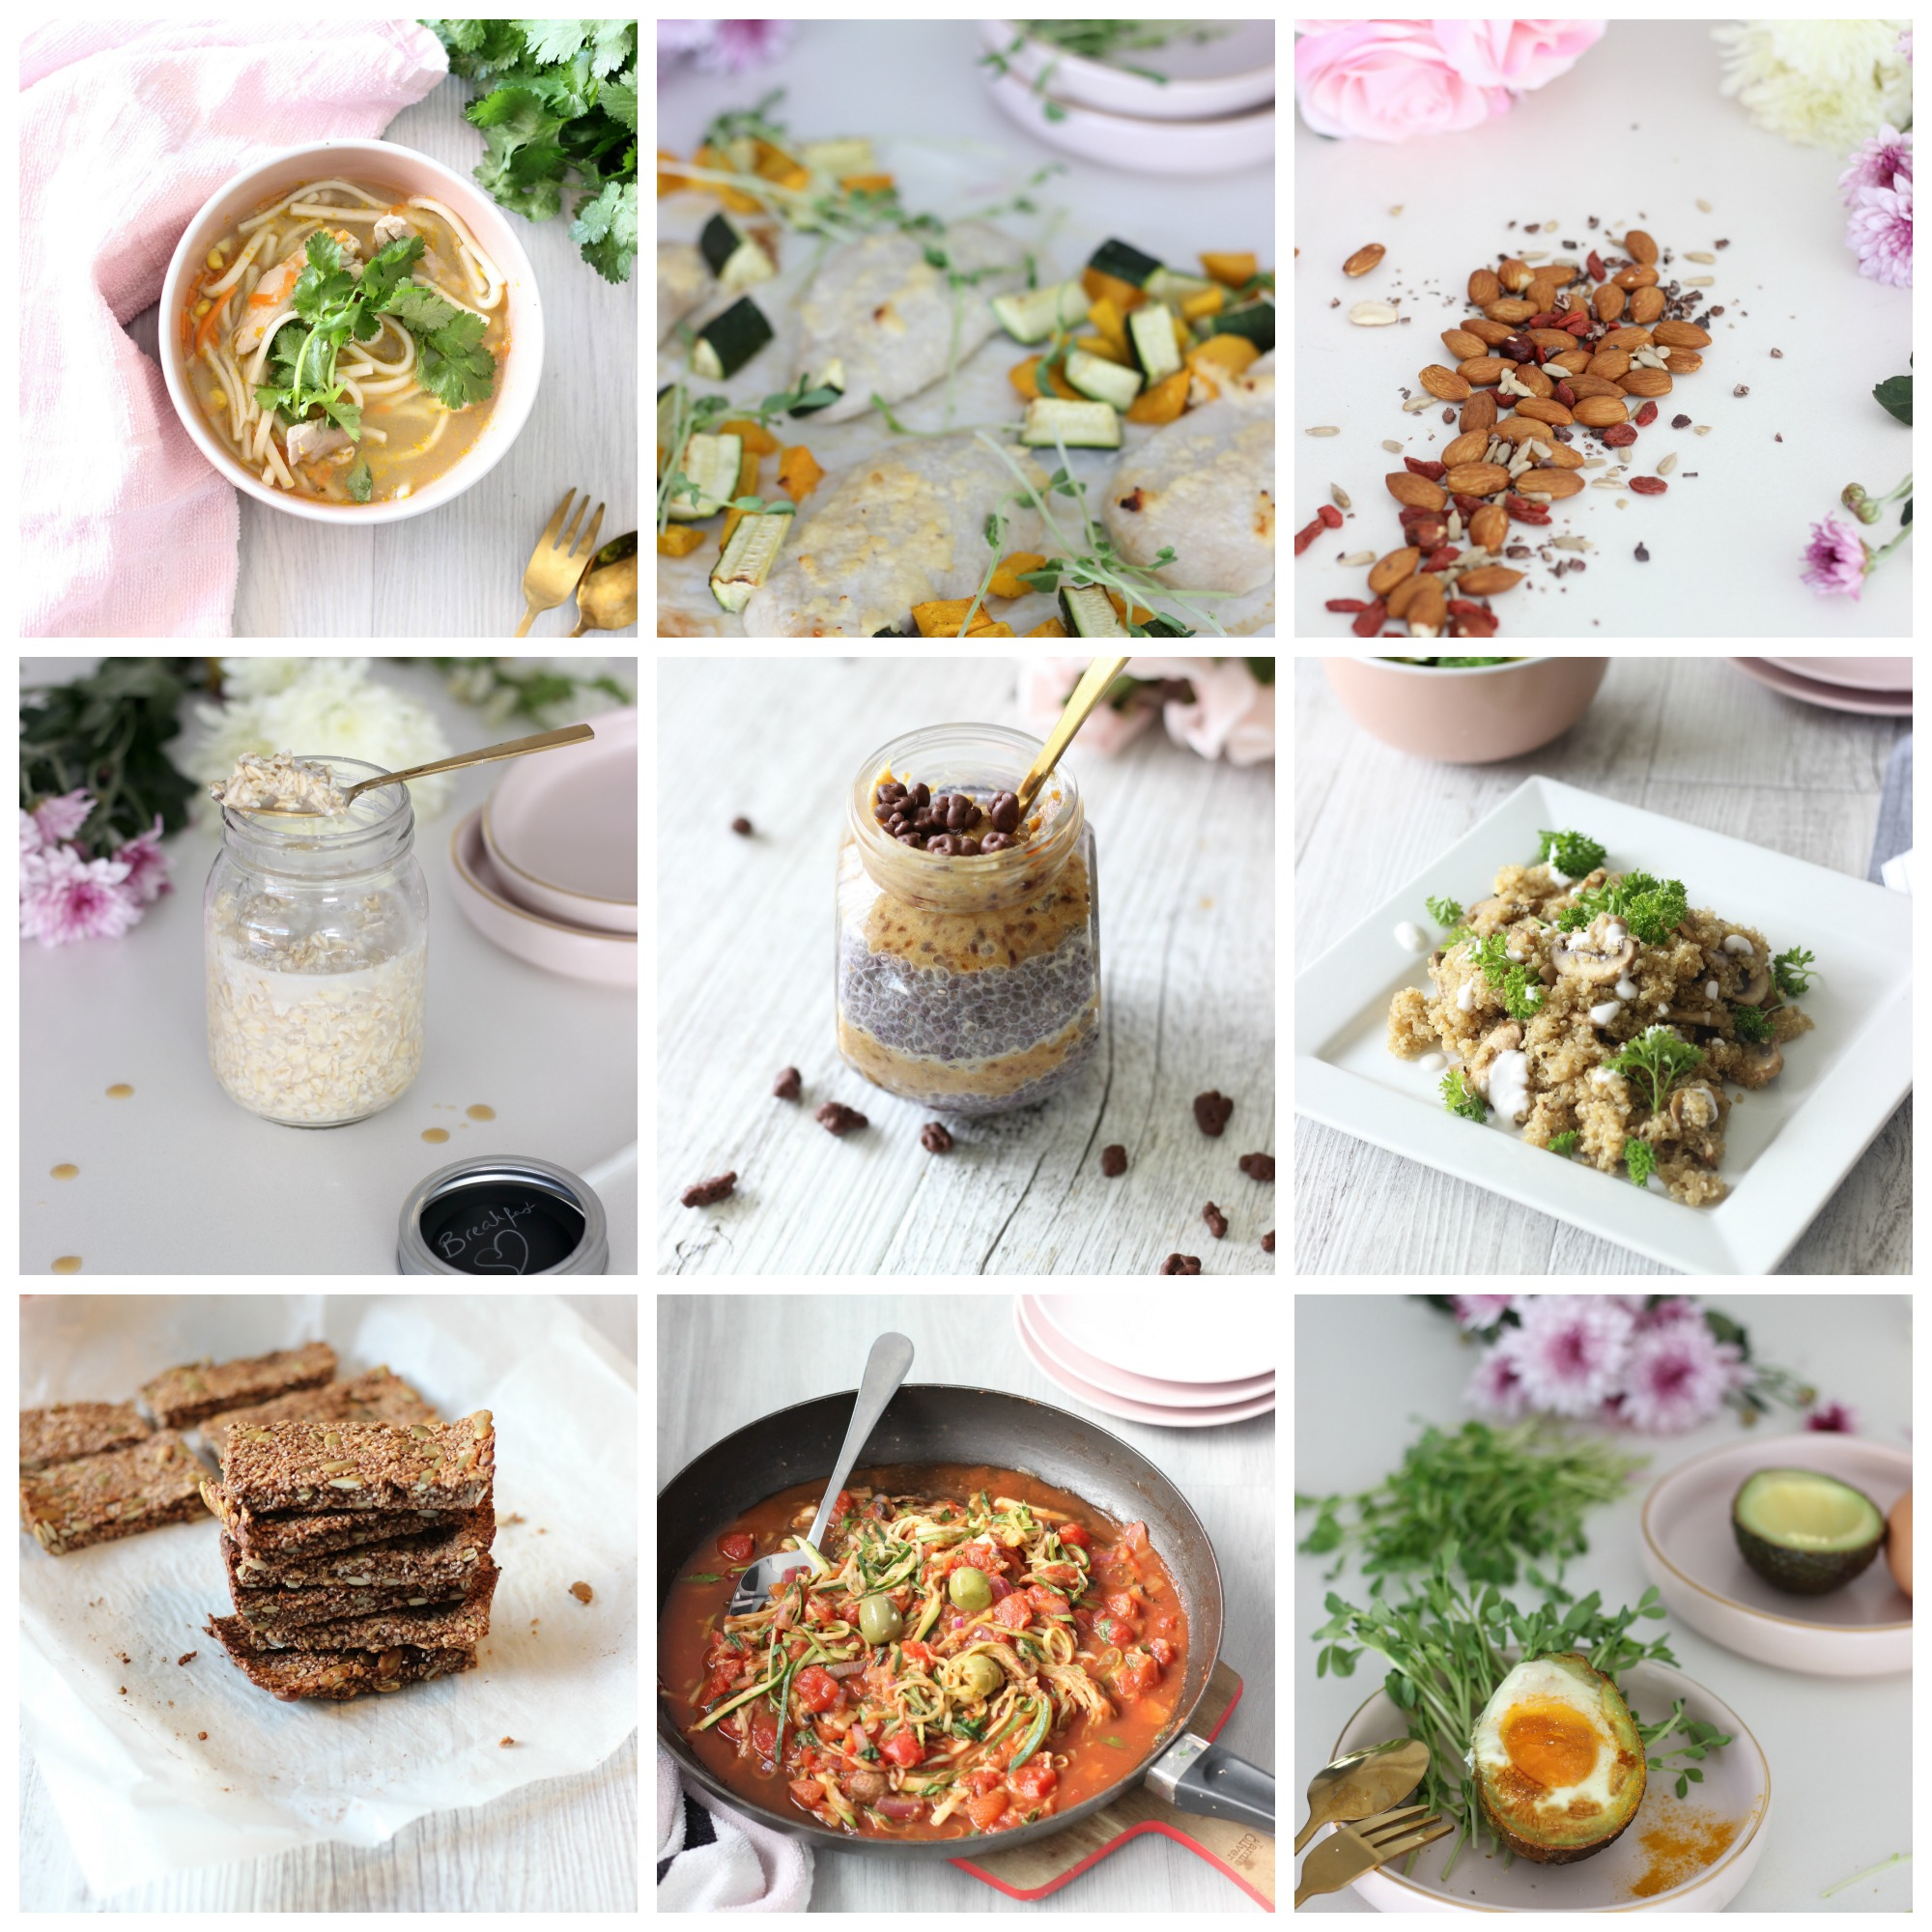 Inside nourished in 30 a quick healthy recipe book for busy mums forumfinder Choice Image